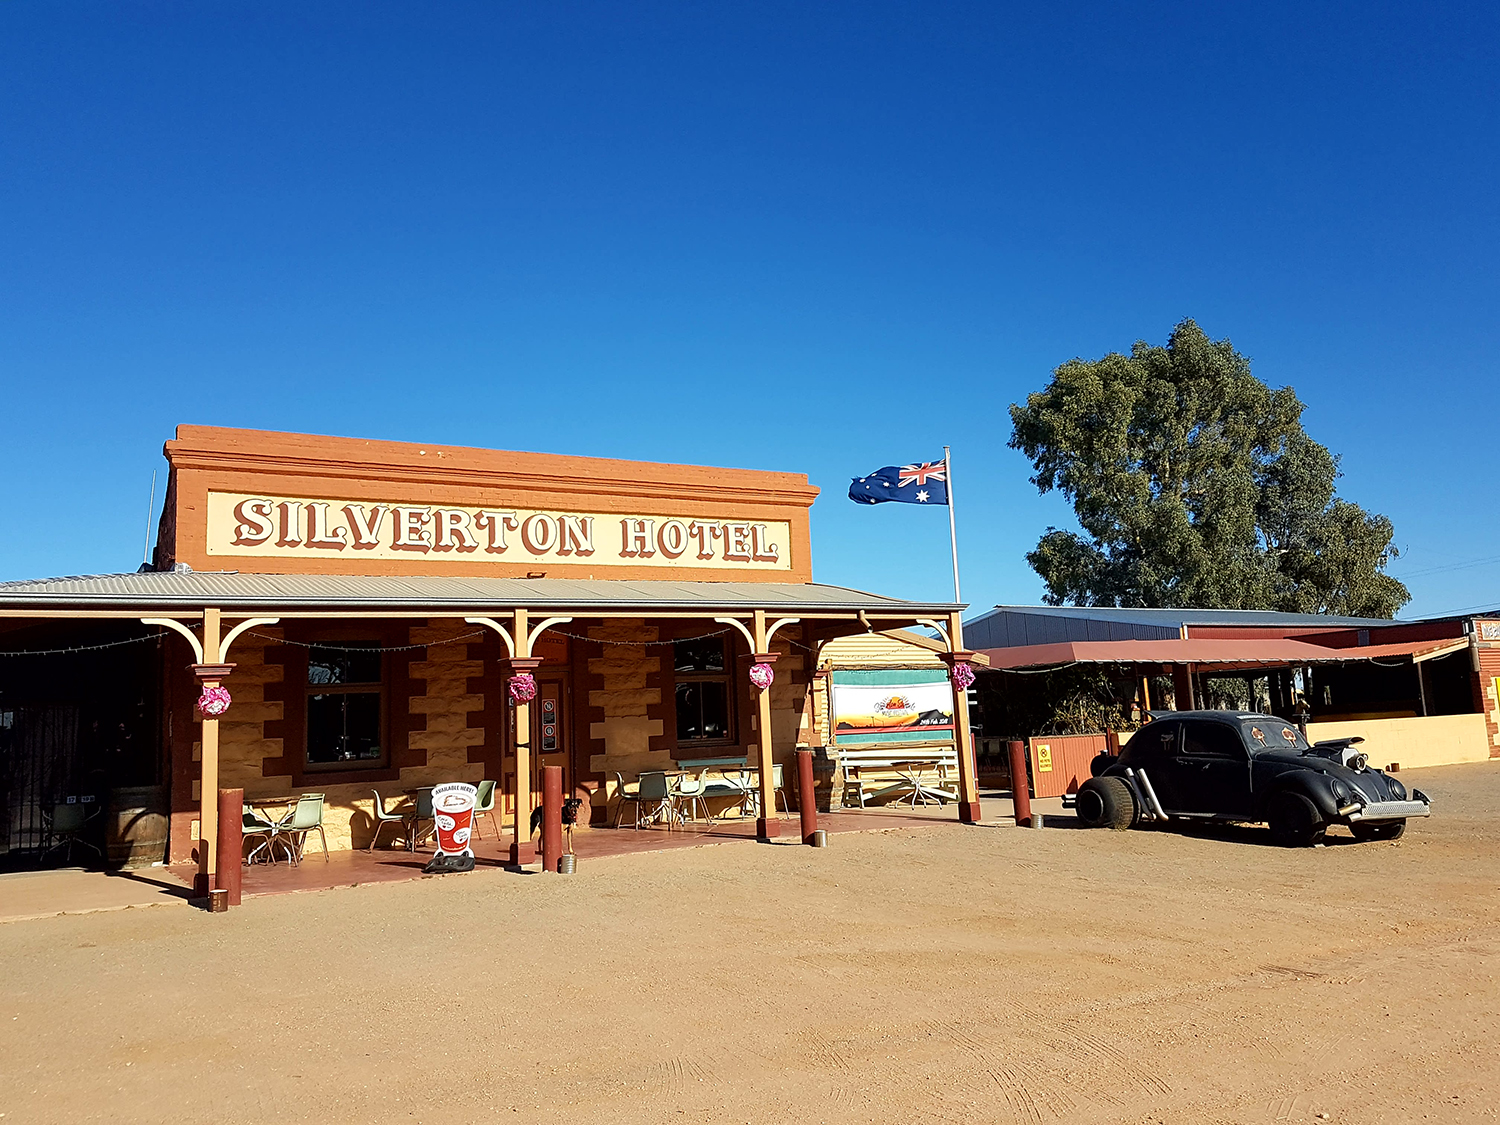 The famous Silverton Hotel where the Silverton Day Out will be hosted